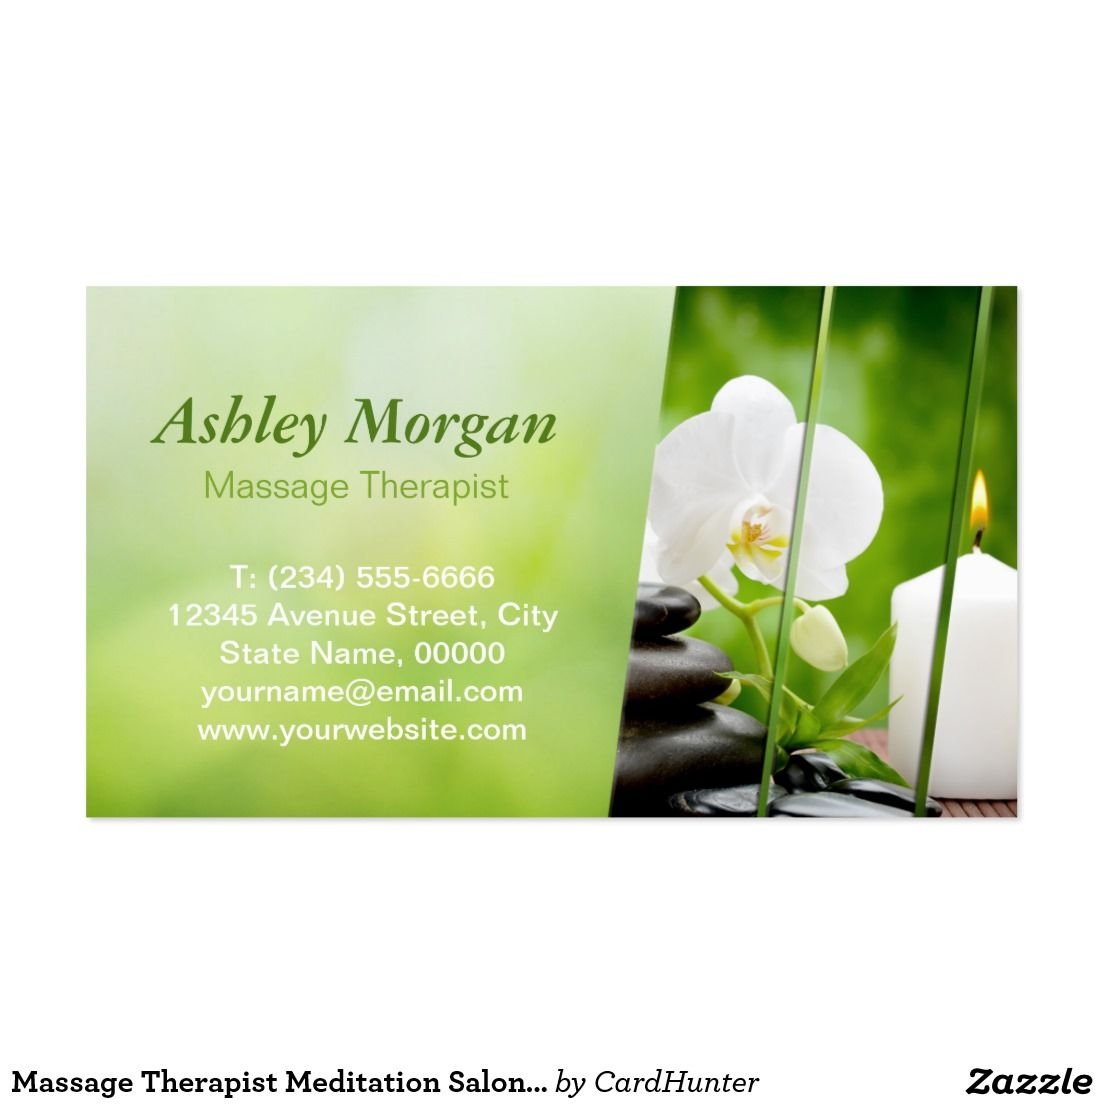 Massage Therapist Meditation Salon Appointment Business Card ...